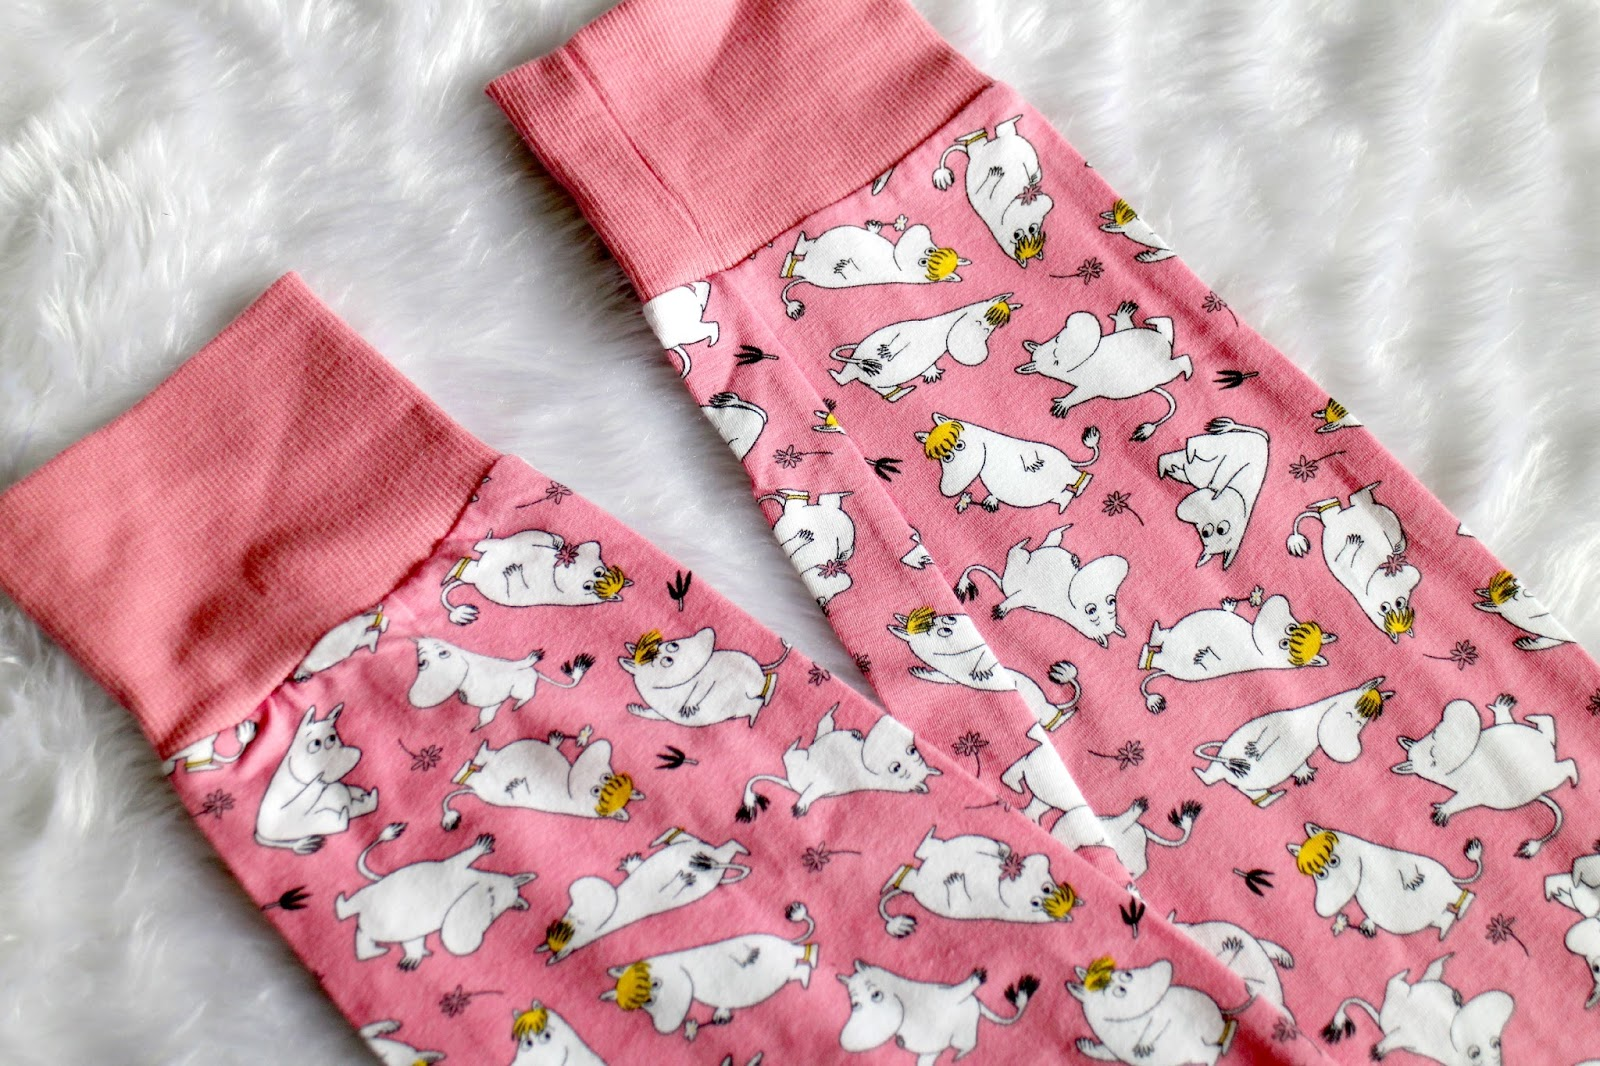 Moomin Pyjamas George at Asda